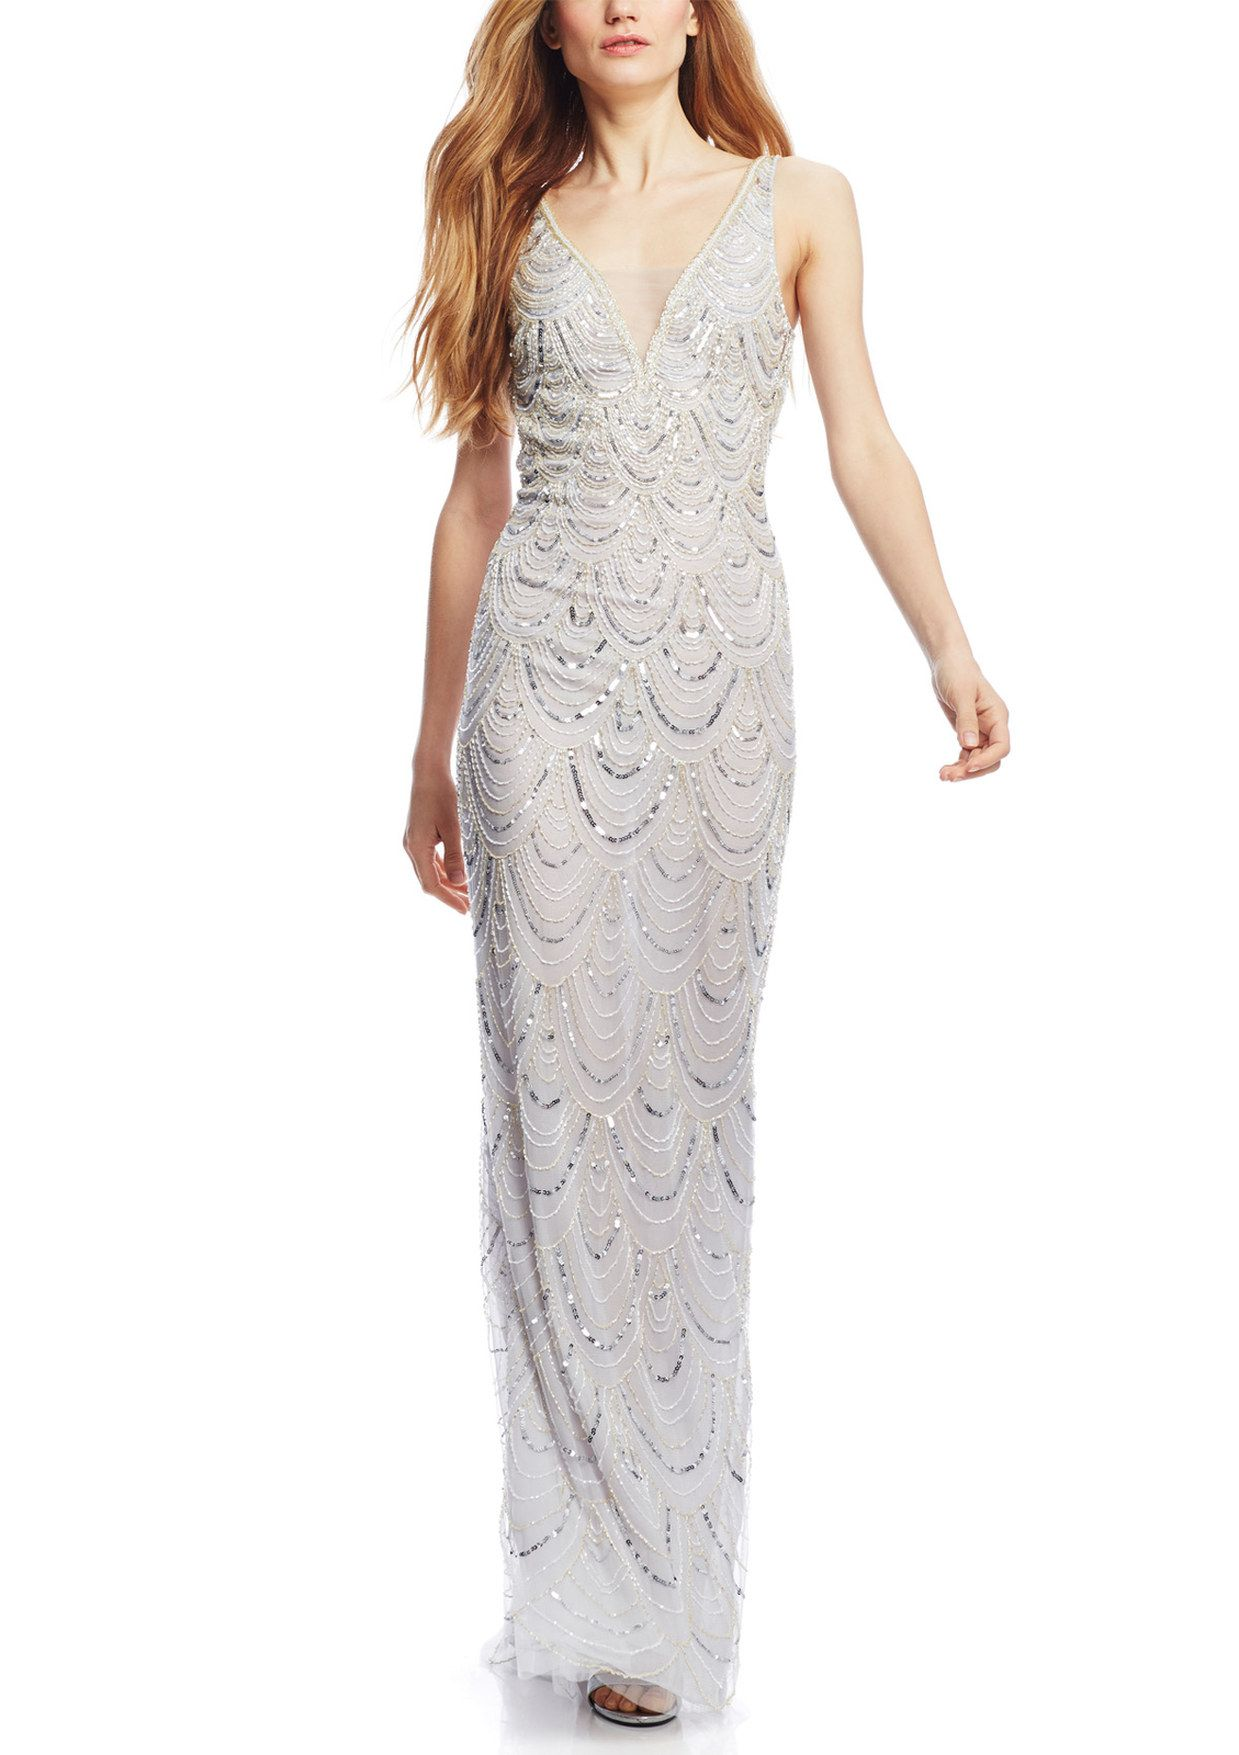 BASIX BLACK LABEL Deep V-Neck All Over Beaded Gown | ideel